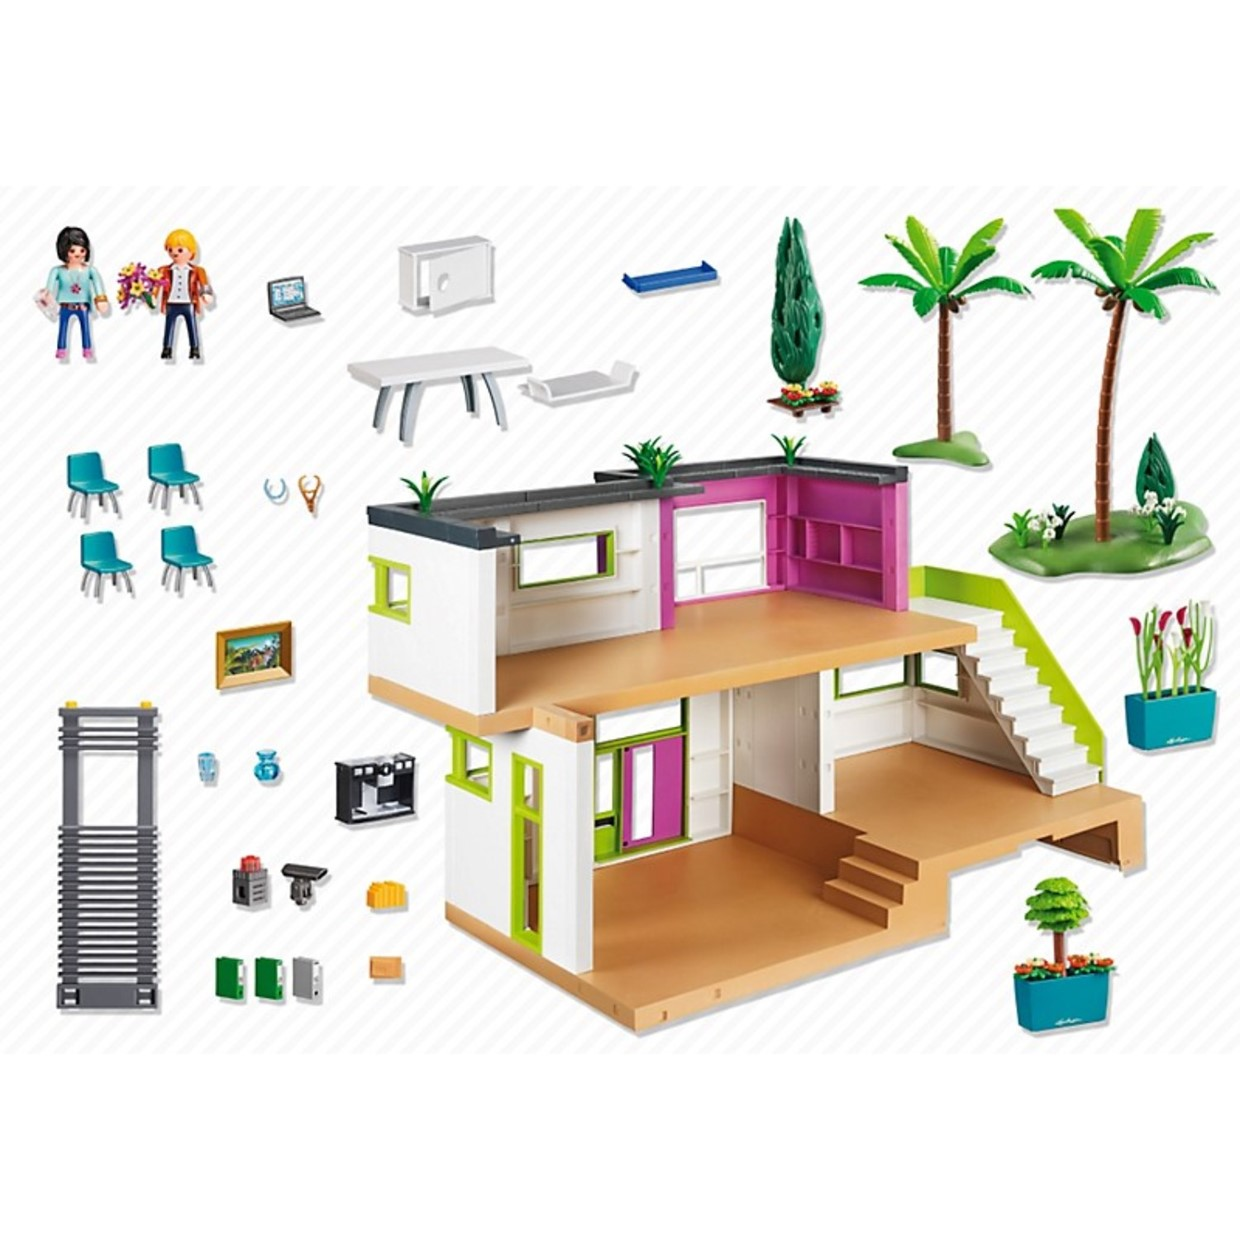 Playmobil > City Life > Playmobil City Life 5574 Moderne Luxe Villa